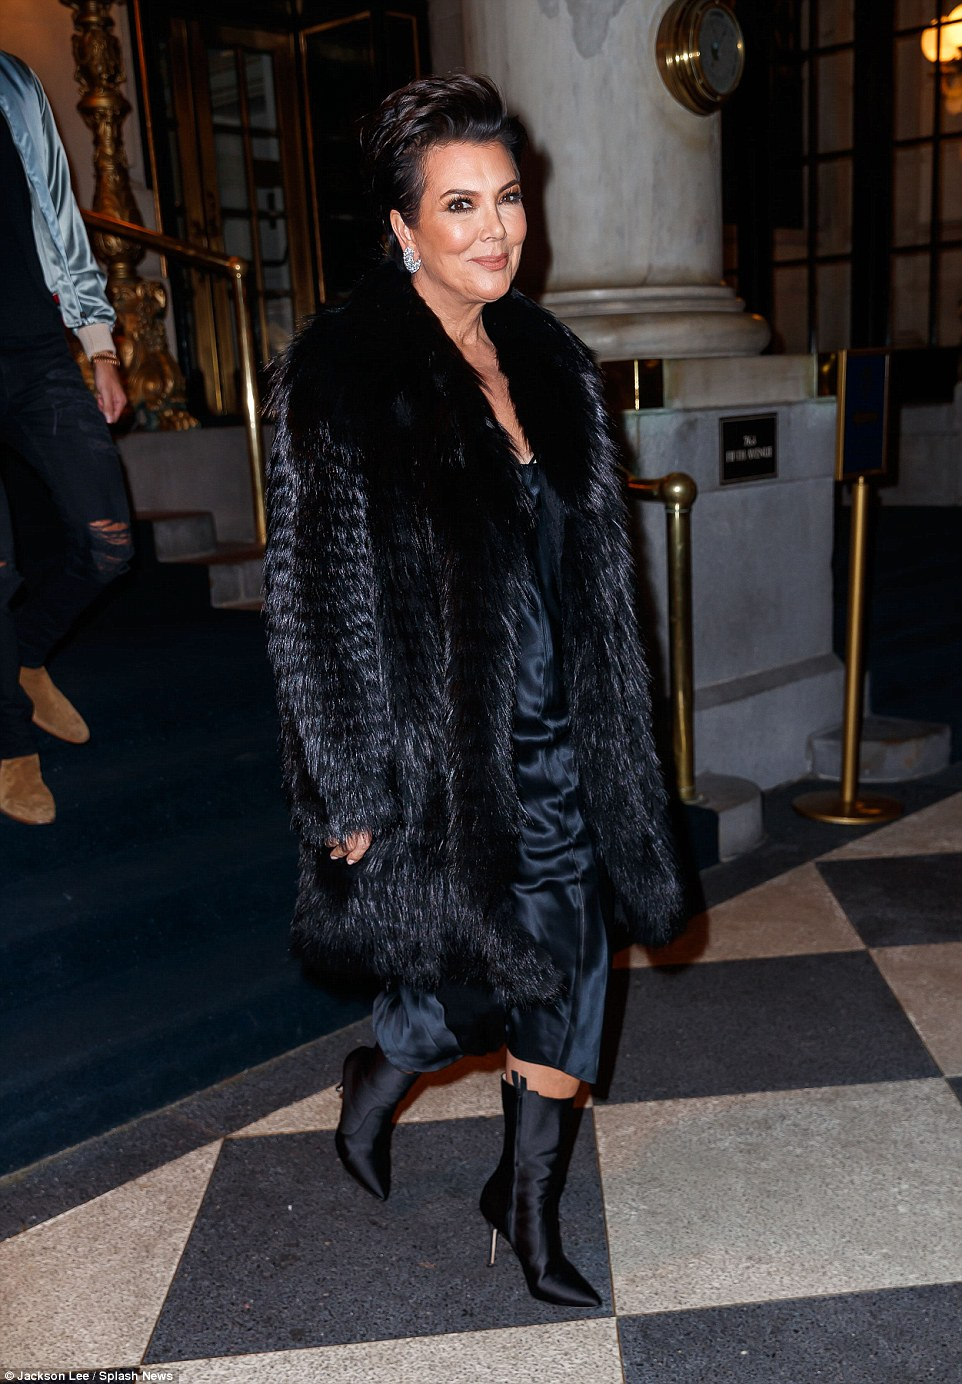 44069C8D00000578-4864294-Chilly_night_Accompanying_the_wife_of_Kanye_West_was_her_mother_-a-8_1504859252686